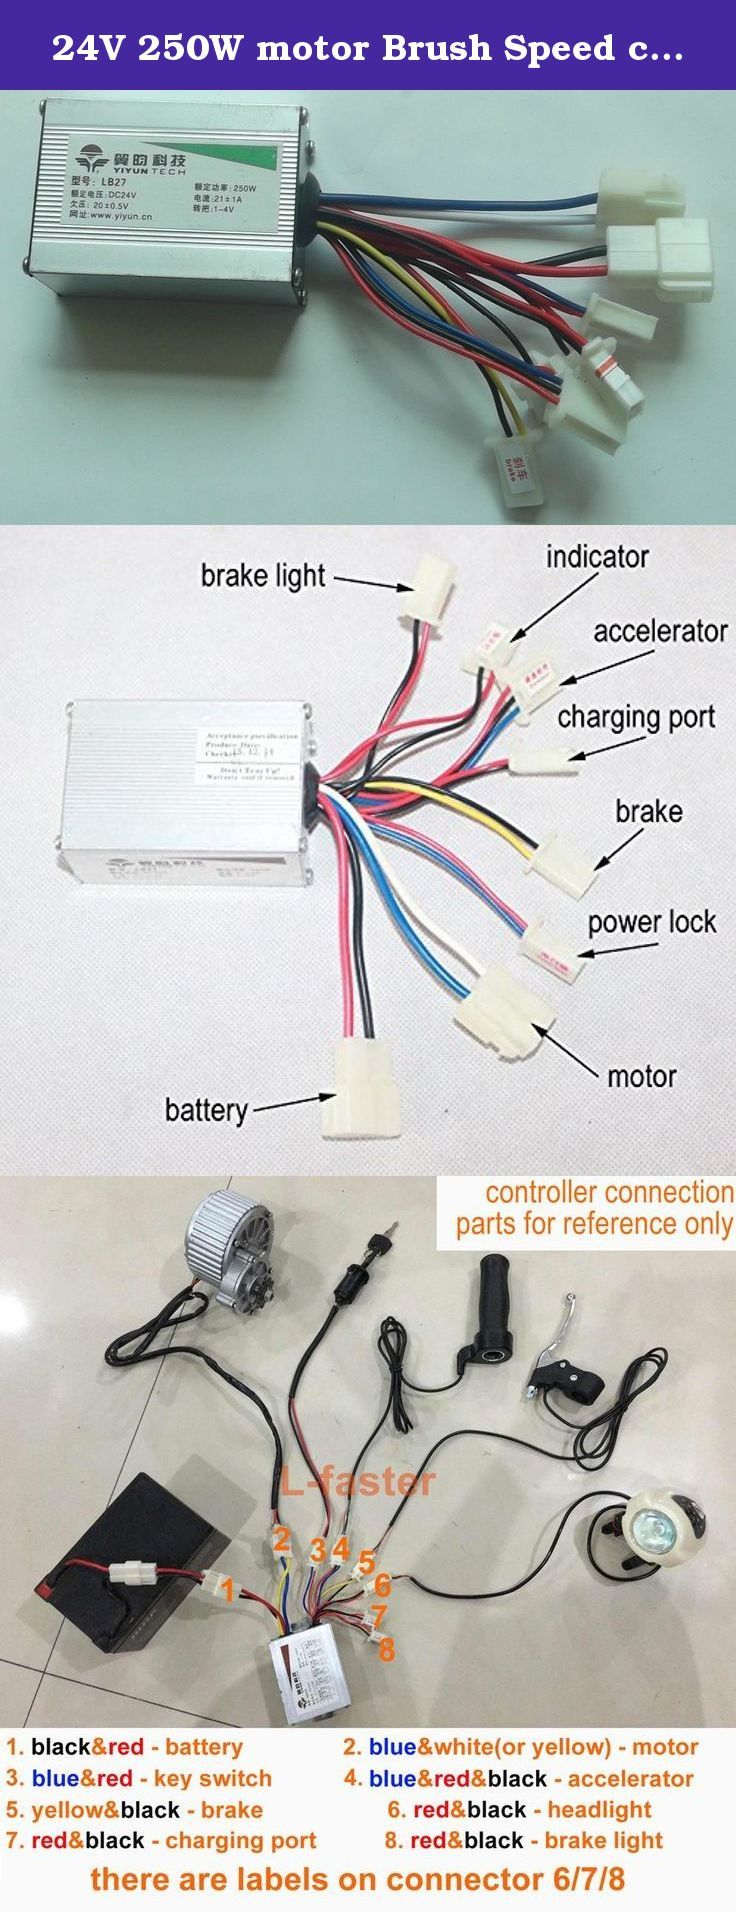 bladez xtr electric scooter wiring schematics wiring diagrambladez xtr electric scooter wiring schematics wiring library24v 250w motor brush speed controller for electric bike